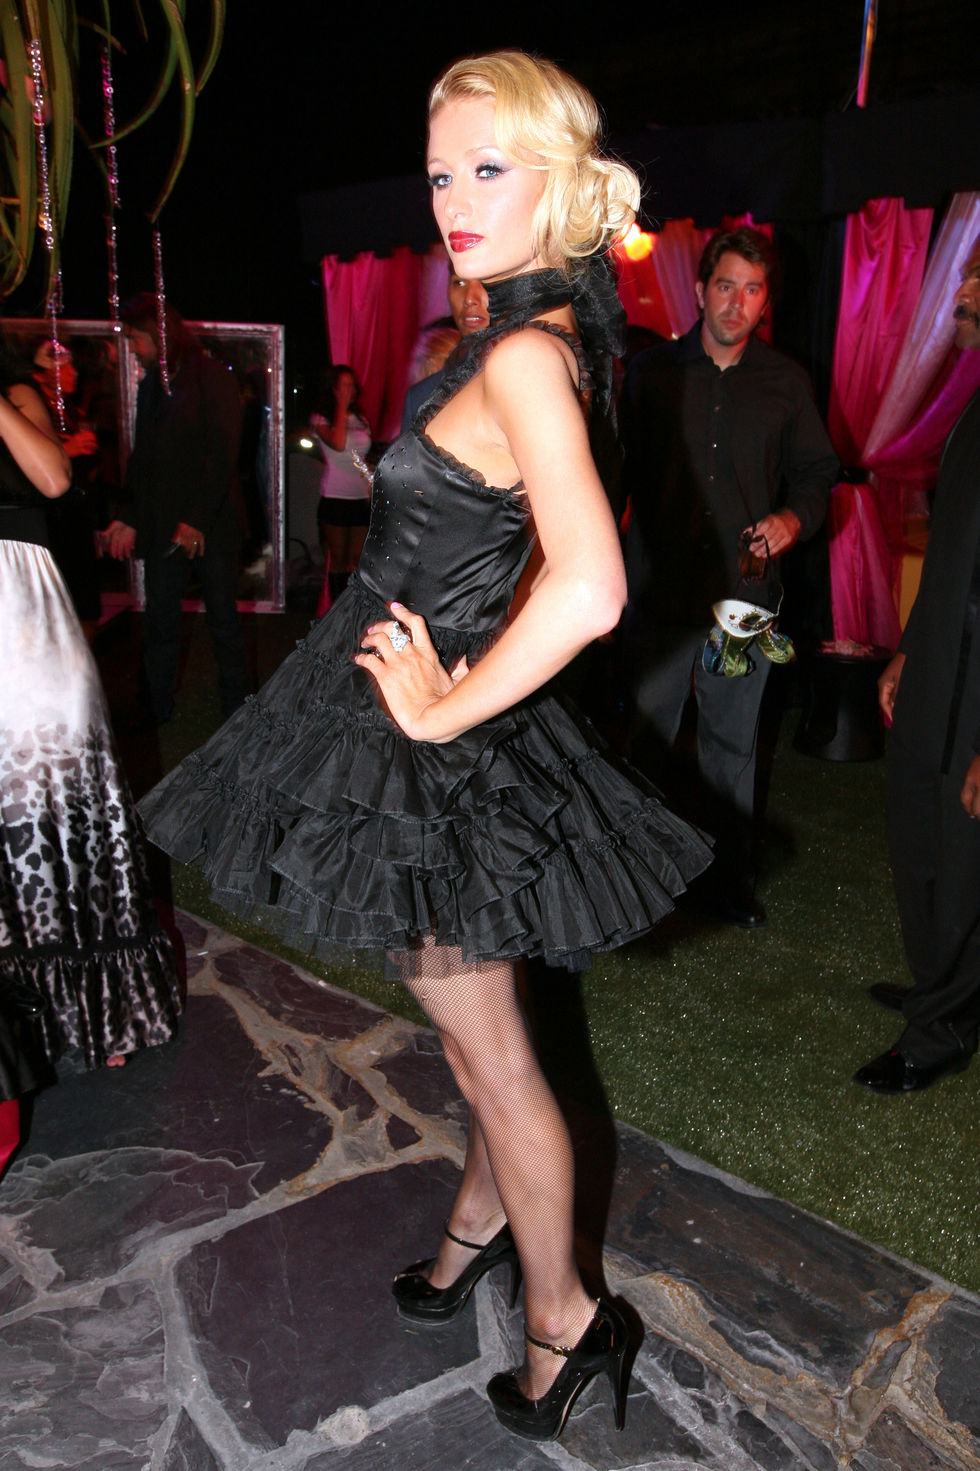 paris-hiltons-my-new-bff-masquerade-ball-at-kress-in-hollywood-01